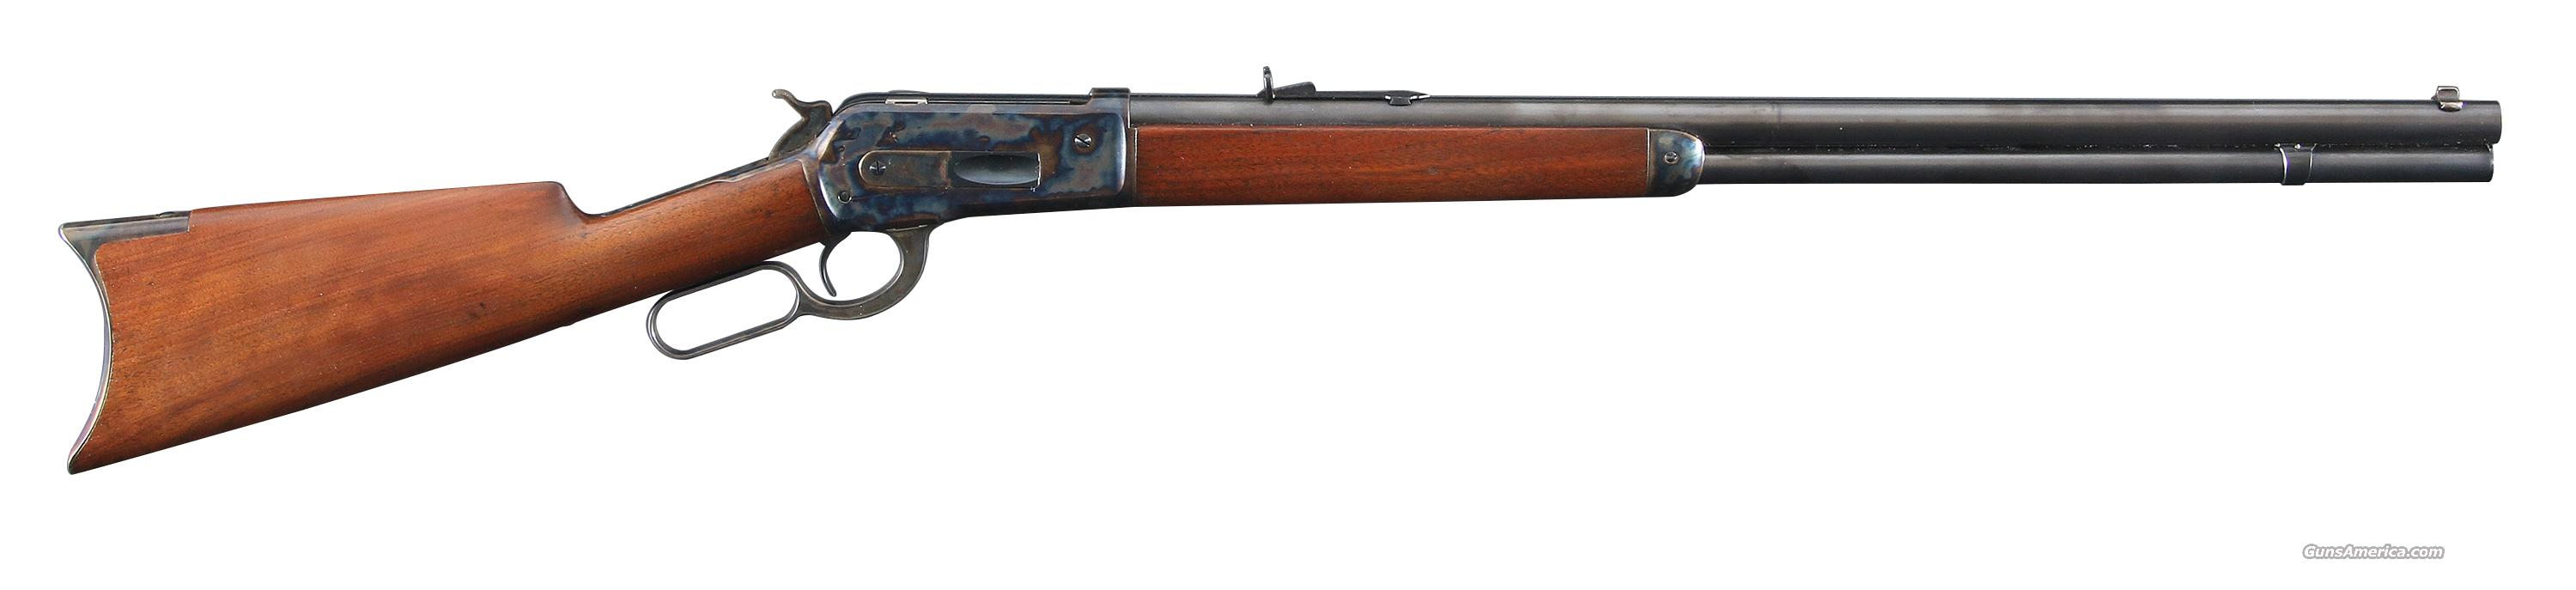 Winchester Model 1886, Mfg. 1893, Restored by Turnbull  Guns > Rifles > Winchester Rifles - Pre-1899 Lever